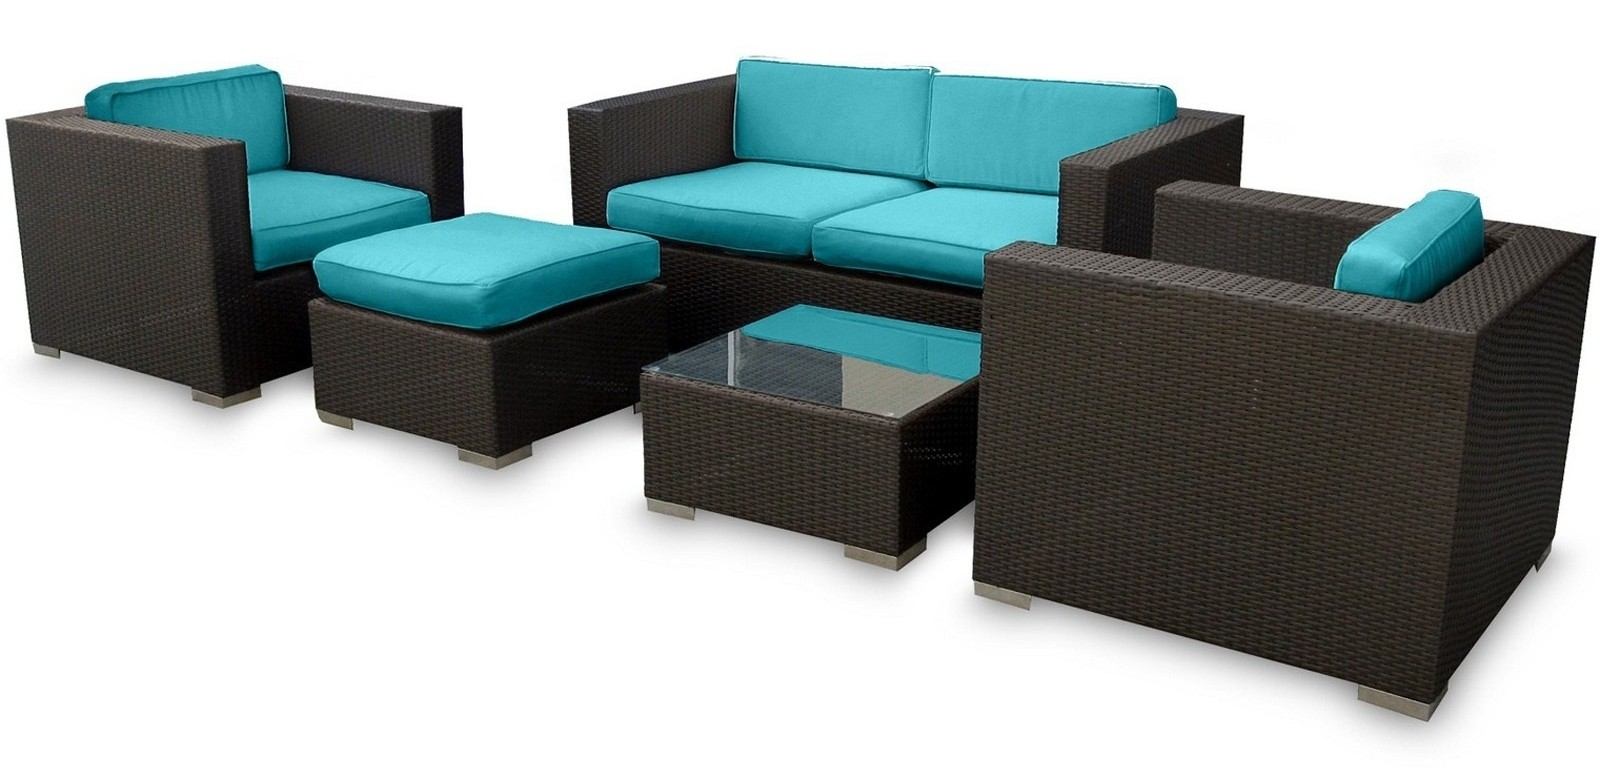 Malibu Outdoor Rattan 5 Piece Set In Espresso with Turquoise Cushions from Re